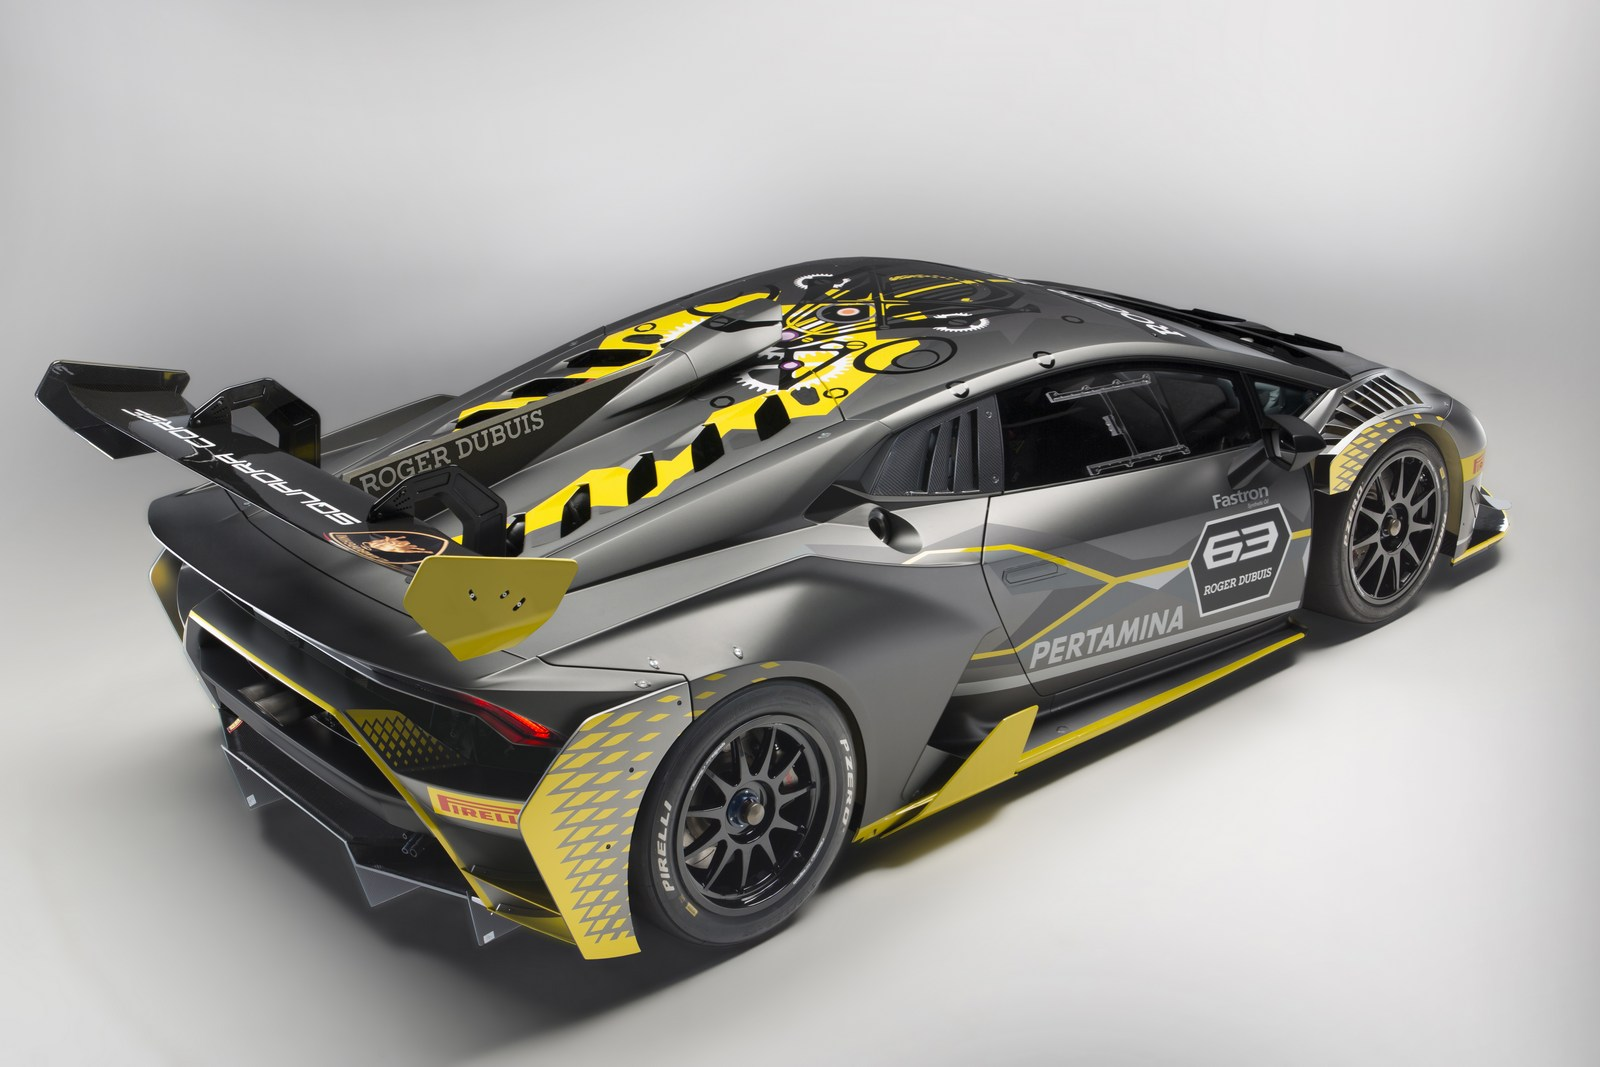 lamborghini huracan super trofeo gets a lot racier with evo model autoevolu. Black Bedroom Furniture Sets. Home Design Ideas